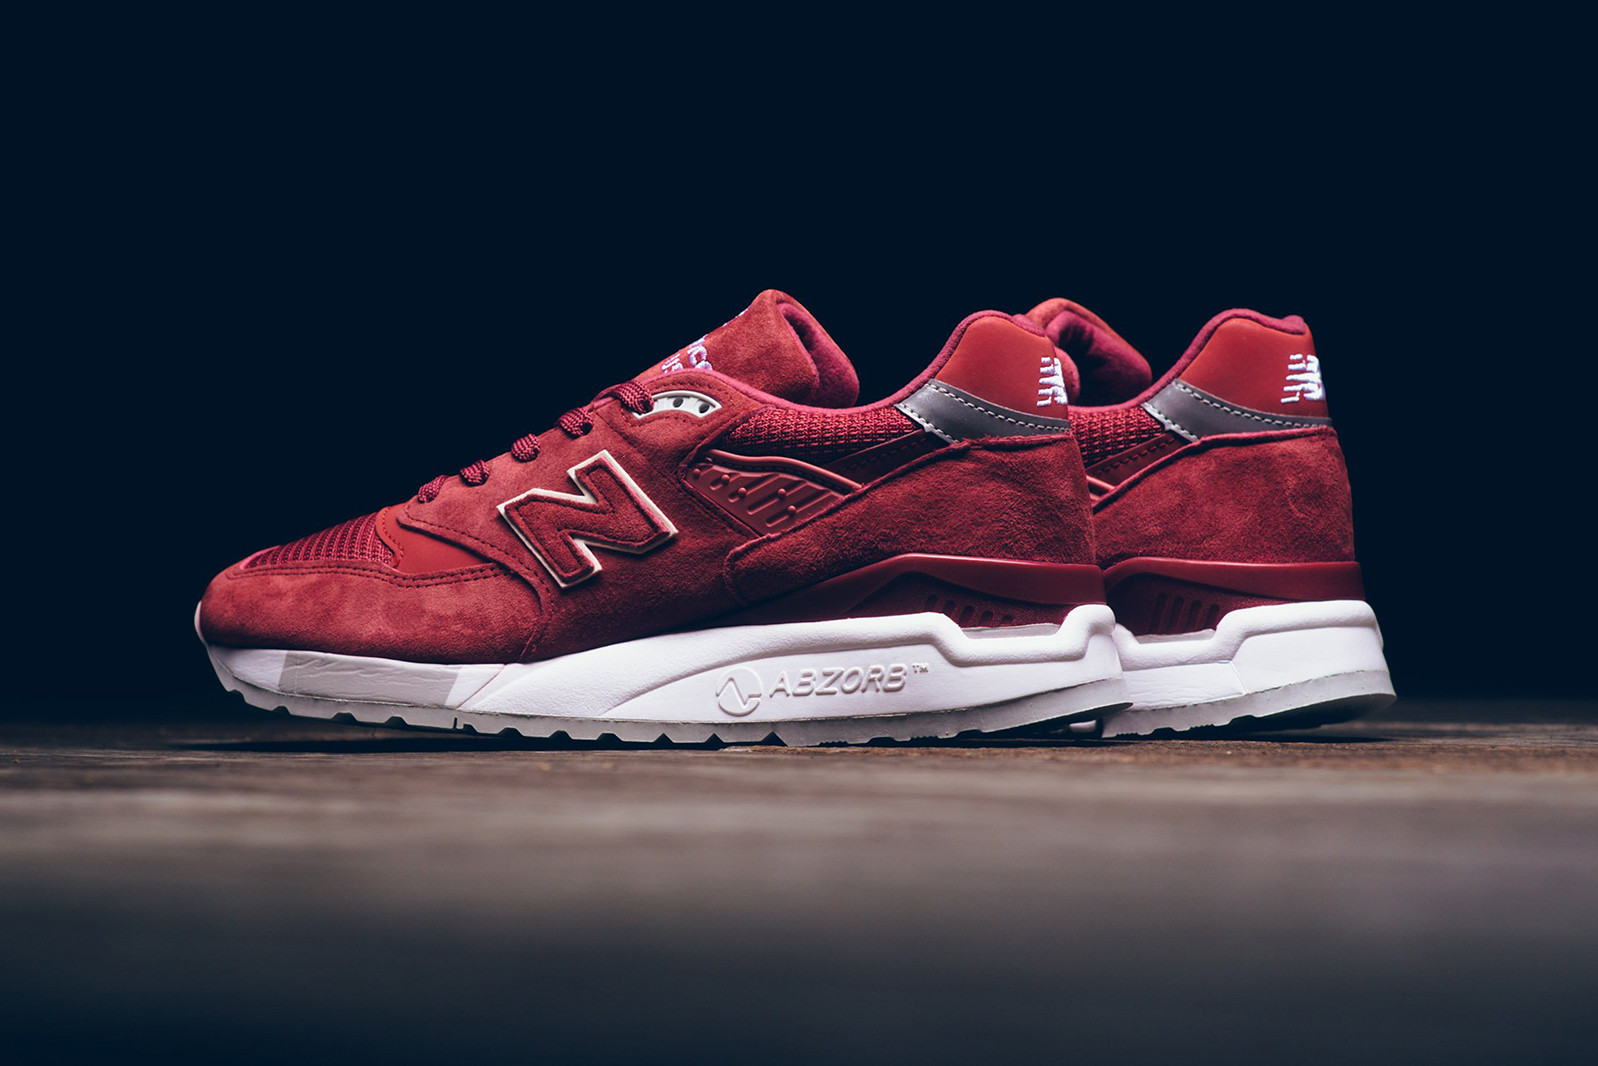 Top 10 red sneakers - New Balance 998